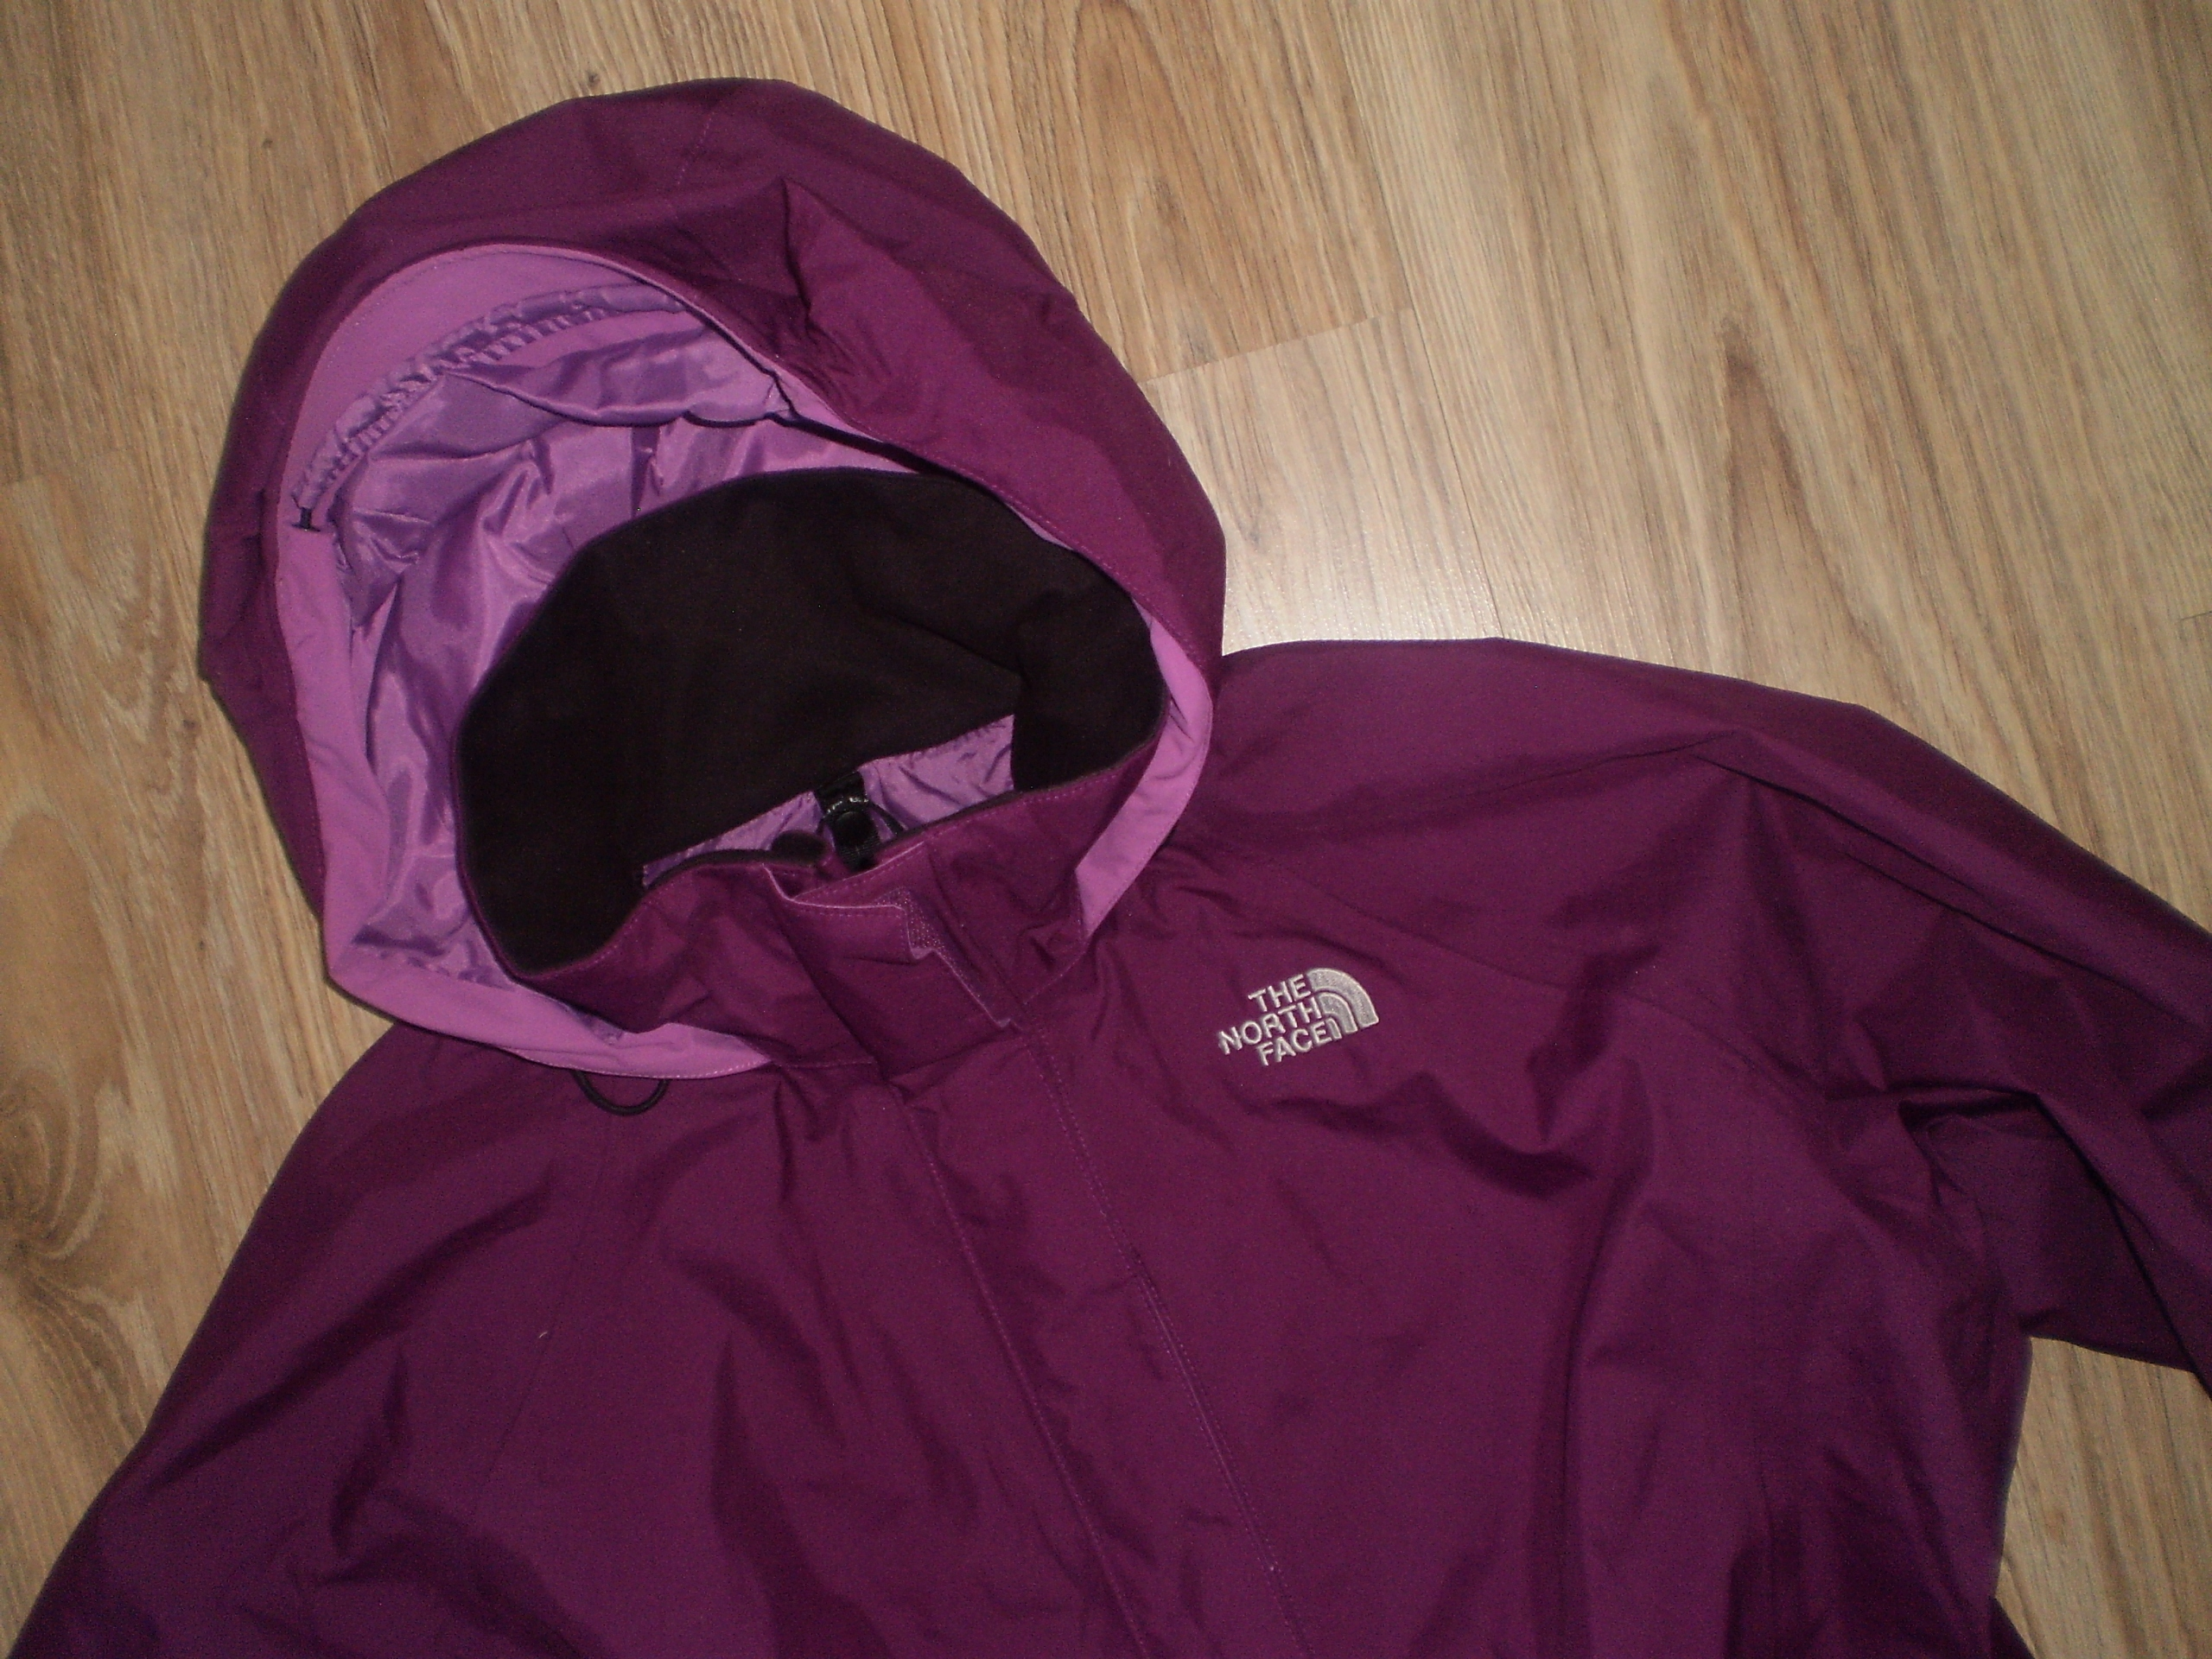 THE NORTH FACE GORE TEX KURTKA DAMSKA M